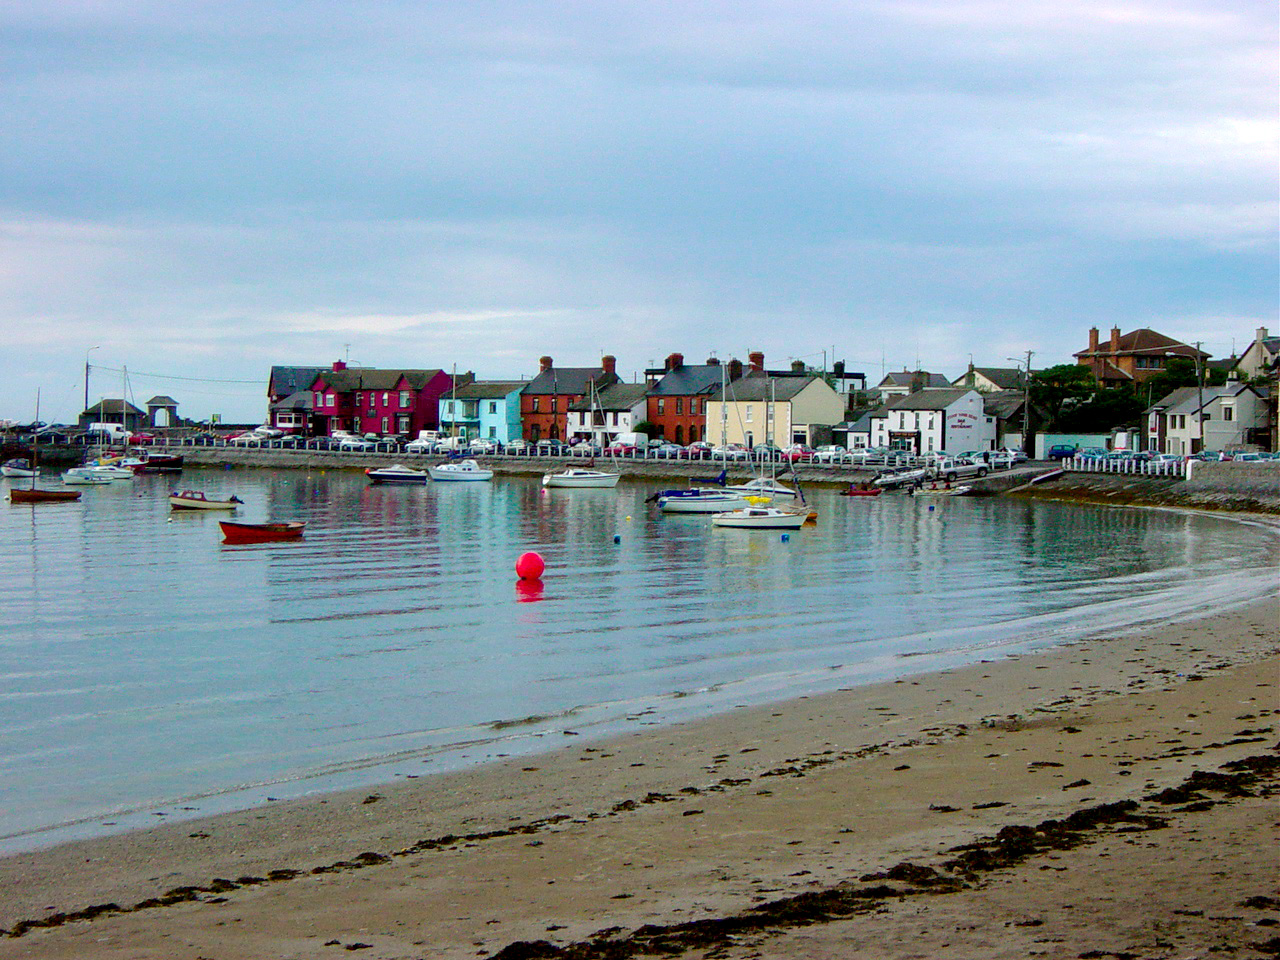 Skerries. Image Credit: Wikipedia.